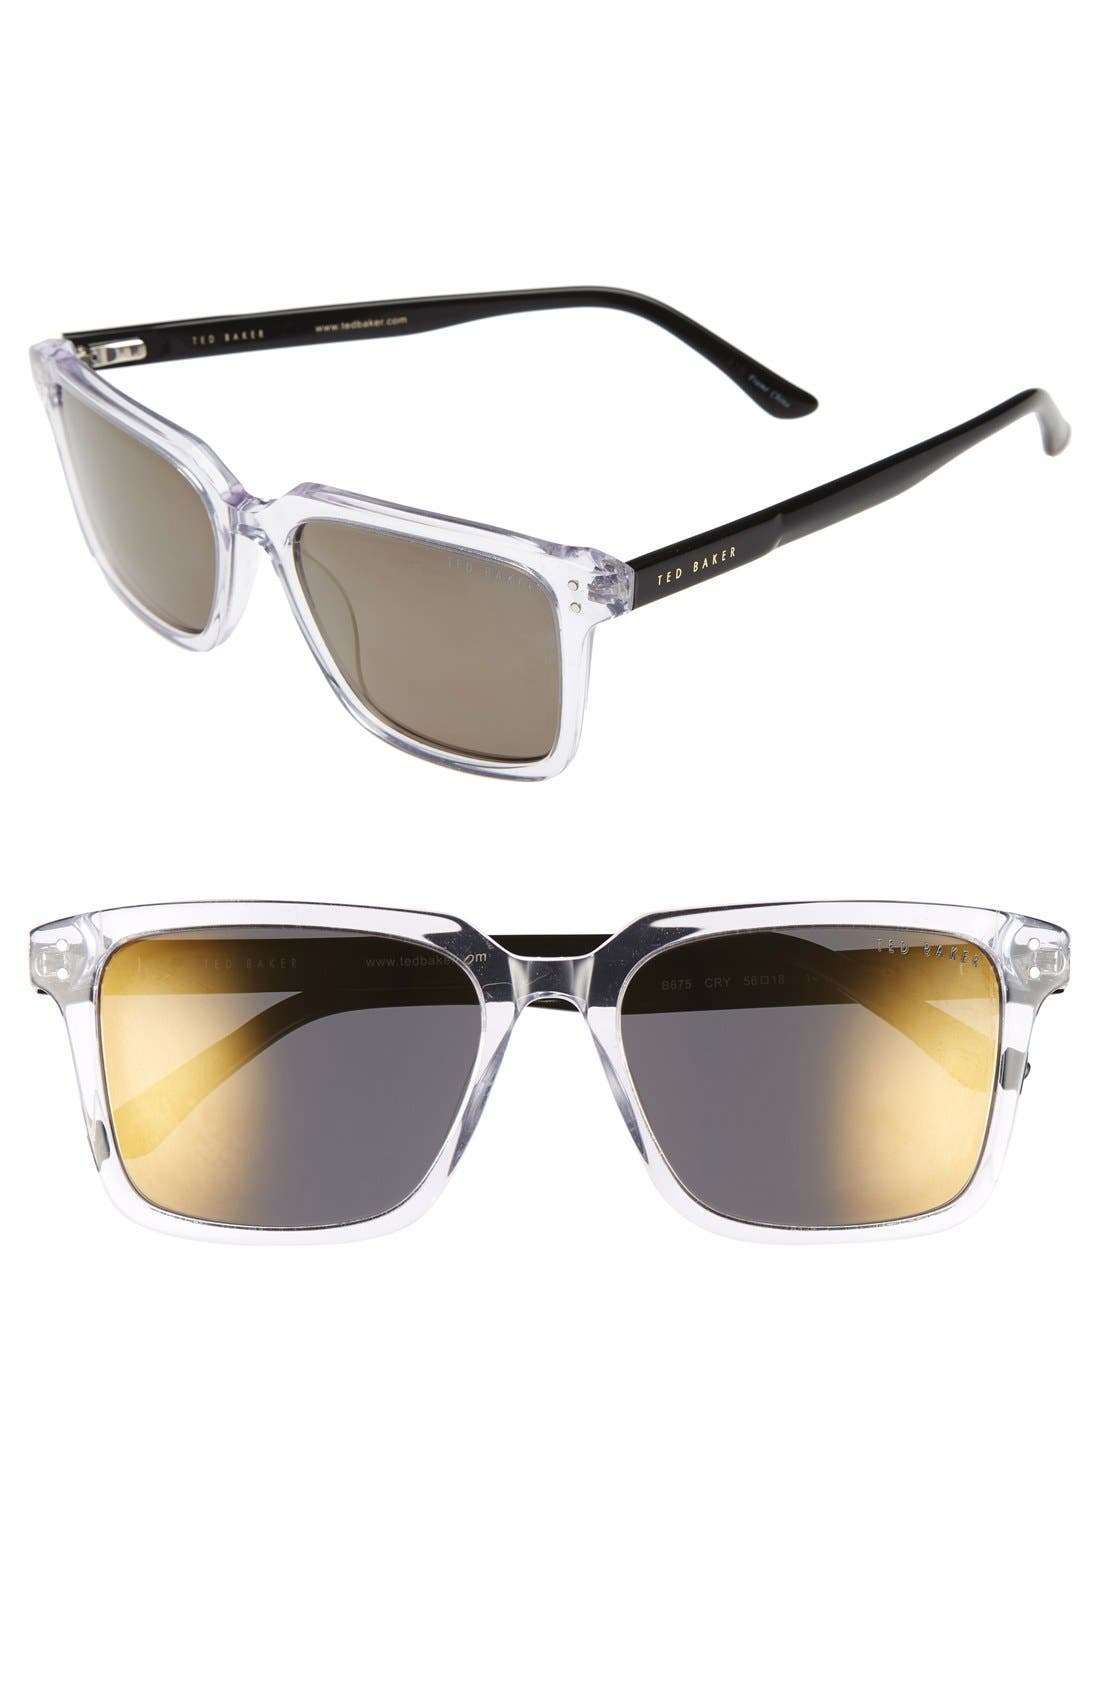 Main Image - Ted Baker London 'Tedster' 56mm Polarized Sunglasses